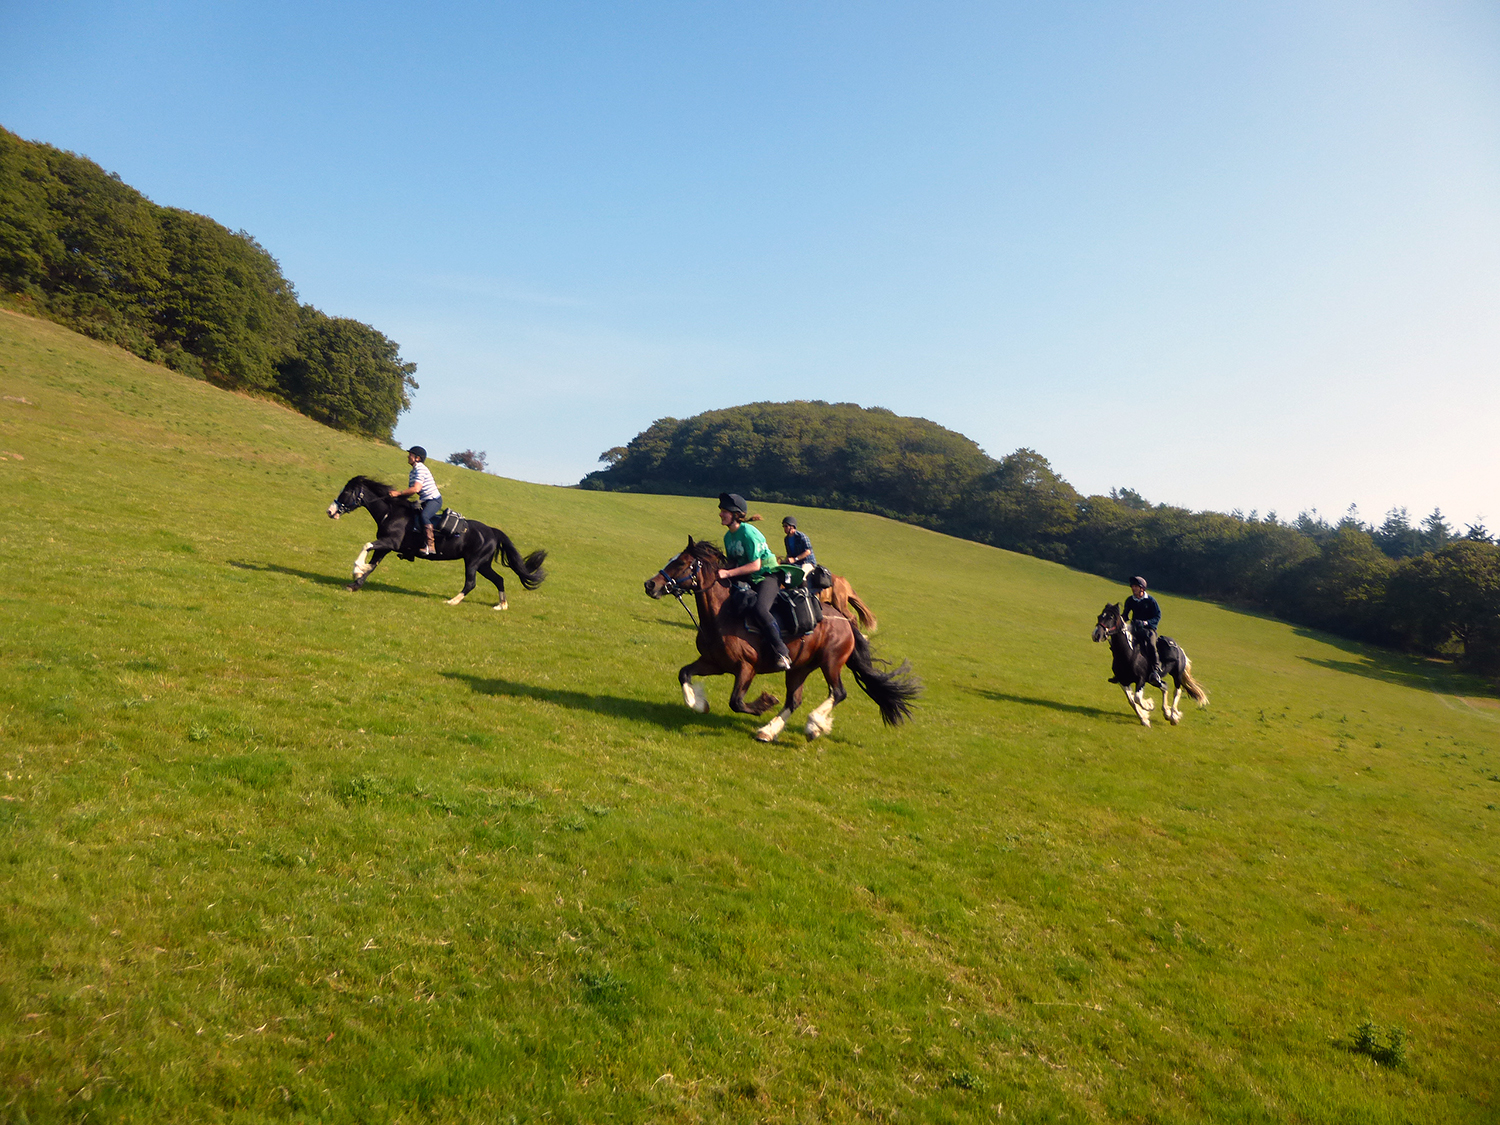 Enjoy relaxed canters on a trysty Freerein steed on your Freerein riding holiday